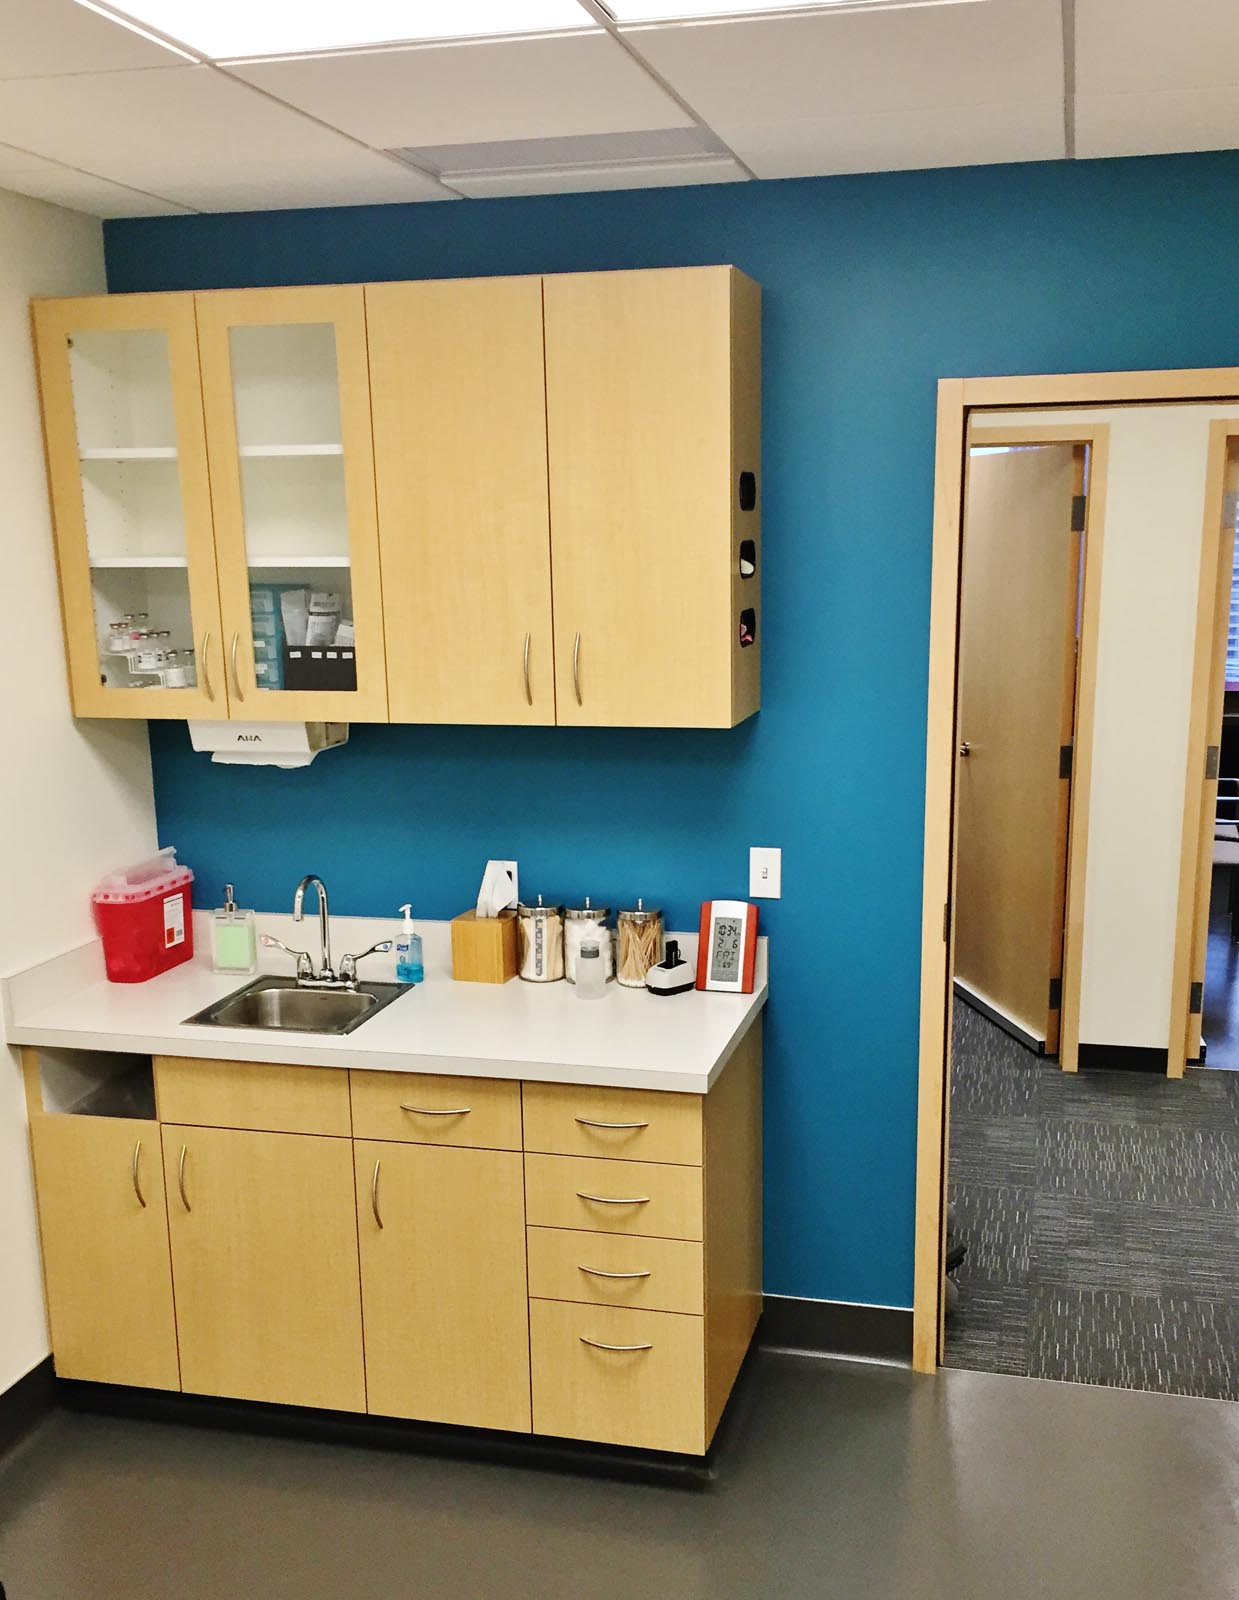 Daniel Frank MD sink and exam room